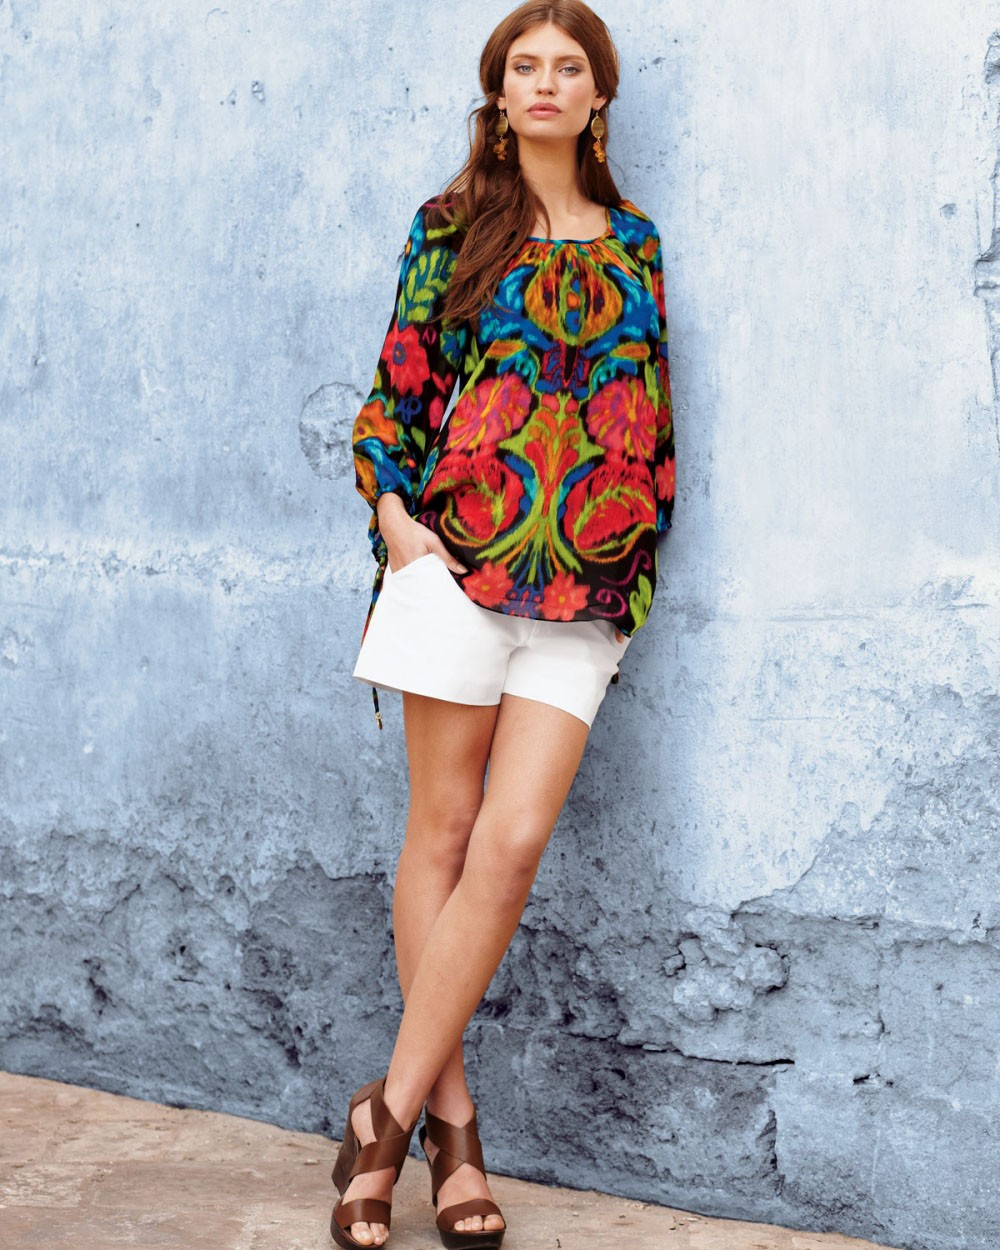 For Android Bianca Balti photo